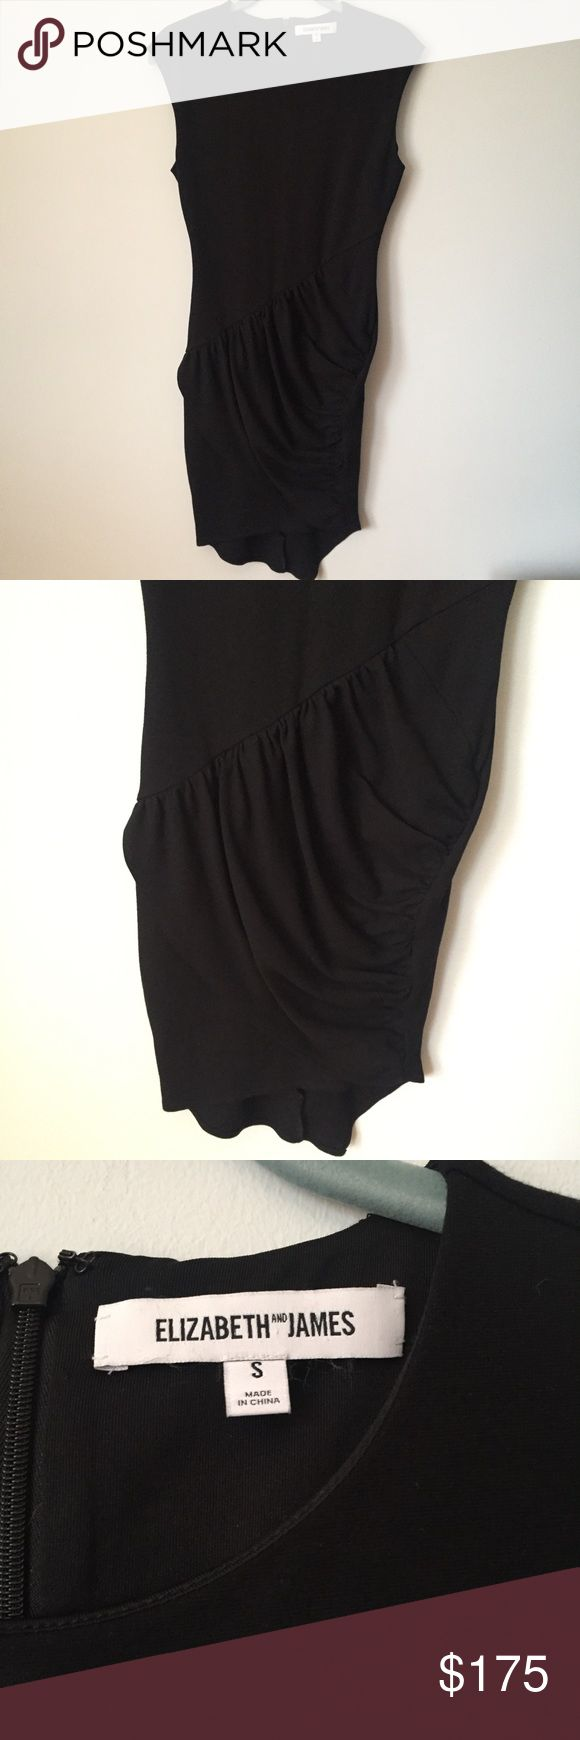 Elizabeth and James Ruched Asymmetrical Dress Stunning Elizabeth and James dress in classic black. Ruching on the lower portion of the dress is so flattering! Slightly asymmetrical hem. Doesn't photograph well hanging but looks great on! Perfect condition, I'll take reasonable offers. Elizabeth and James Dresses